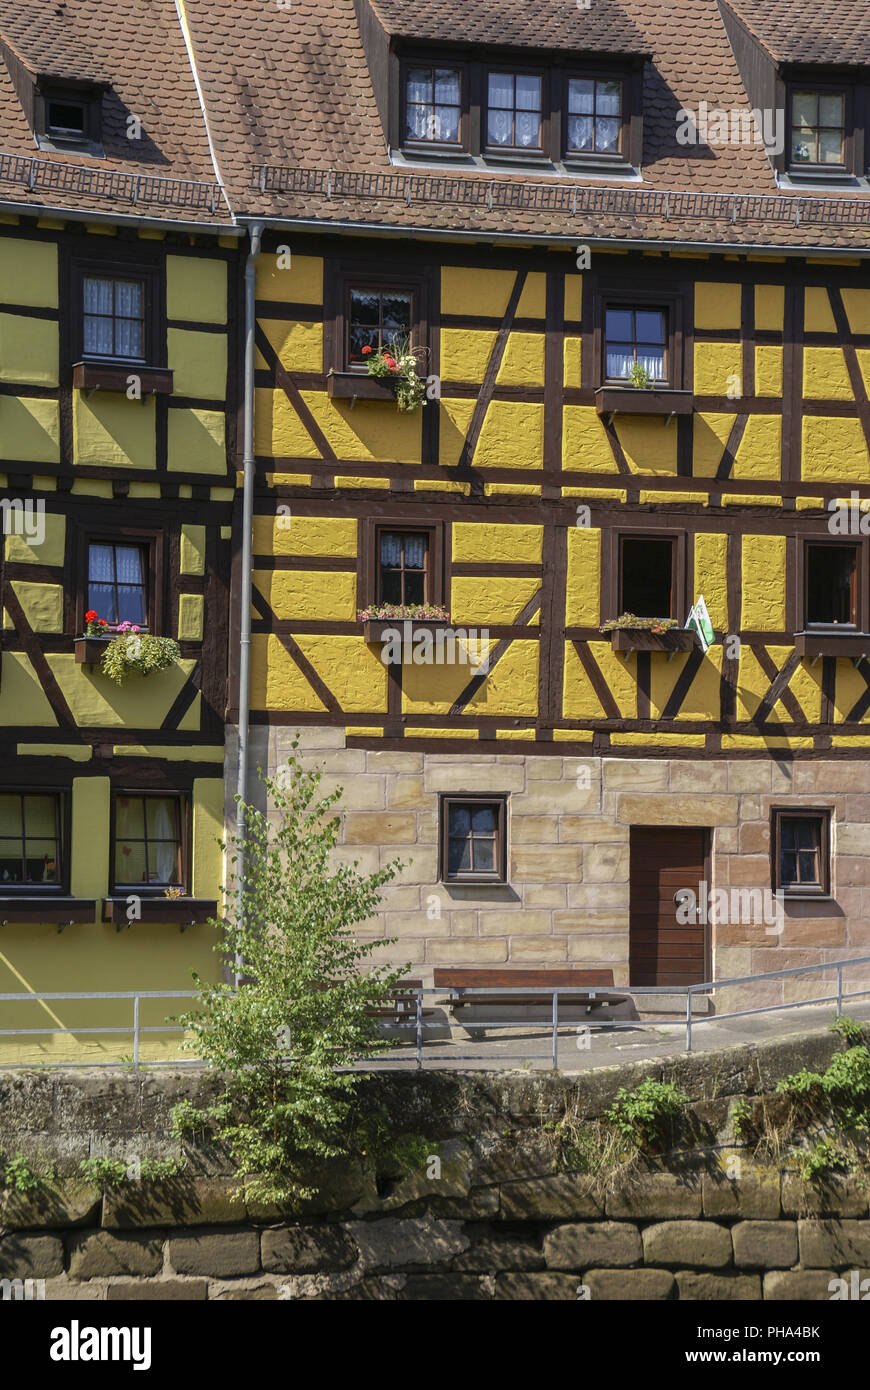 Half-Timbering Houses in Stein, Bavaria, Germany - Stock Image